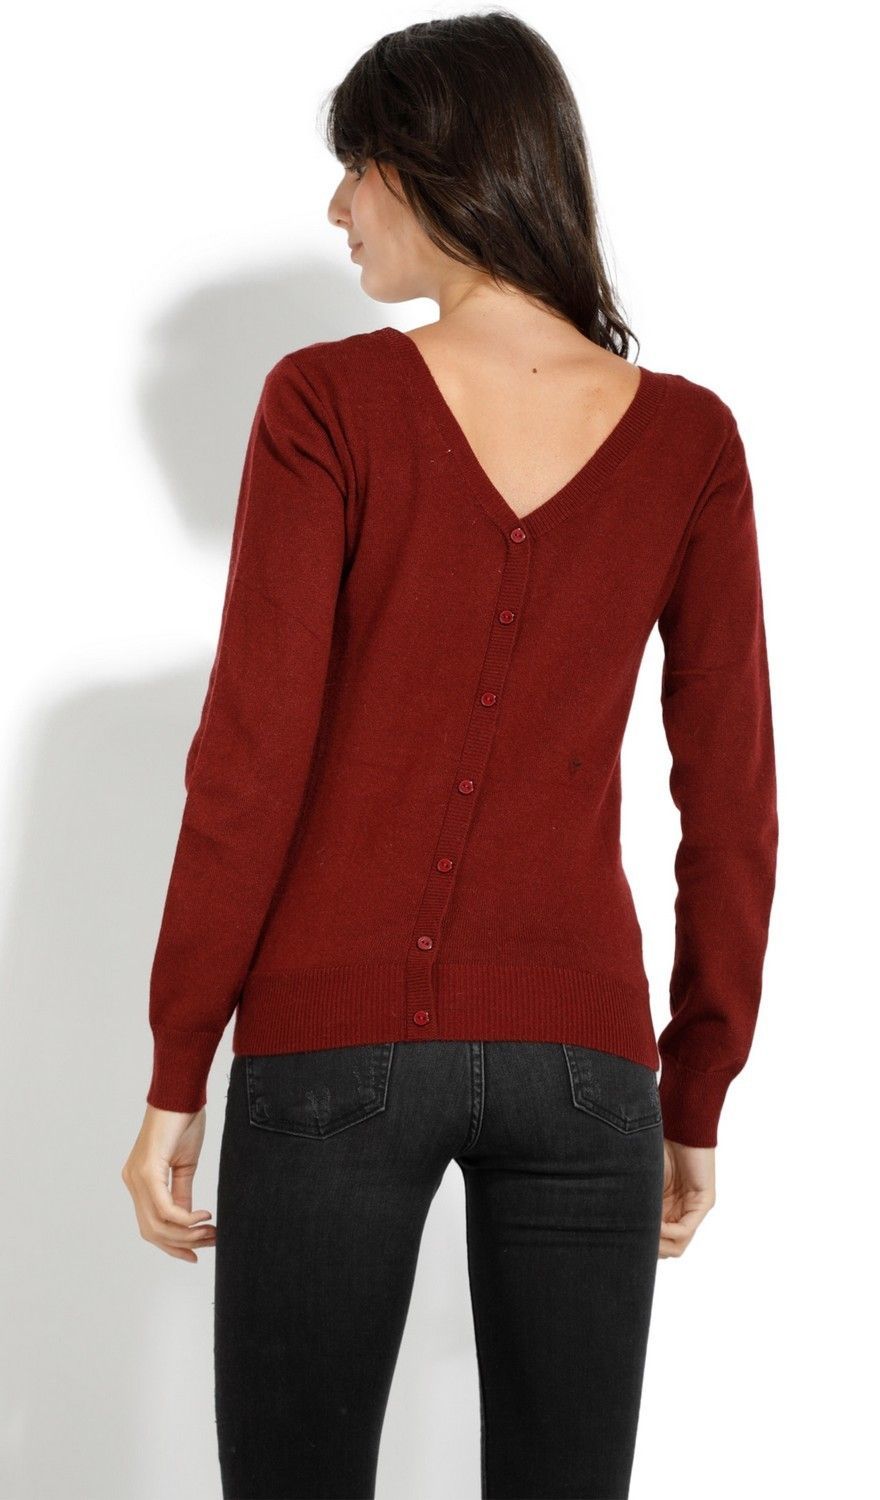 Assuili Boat Neck Buttoned Back Sweater in Maroon